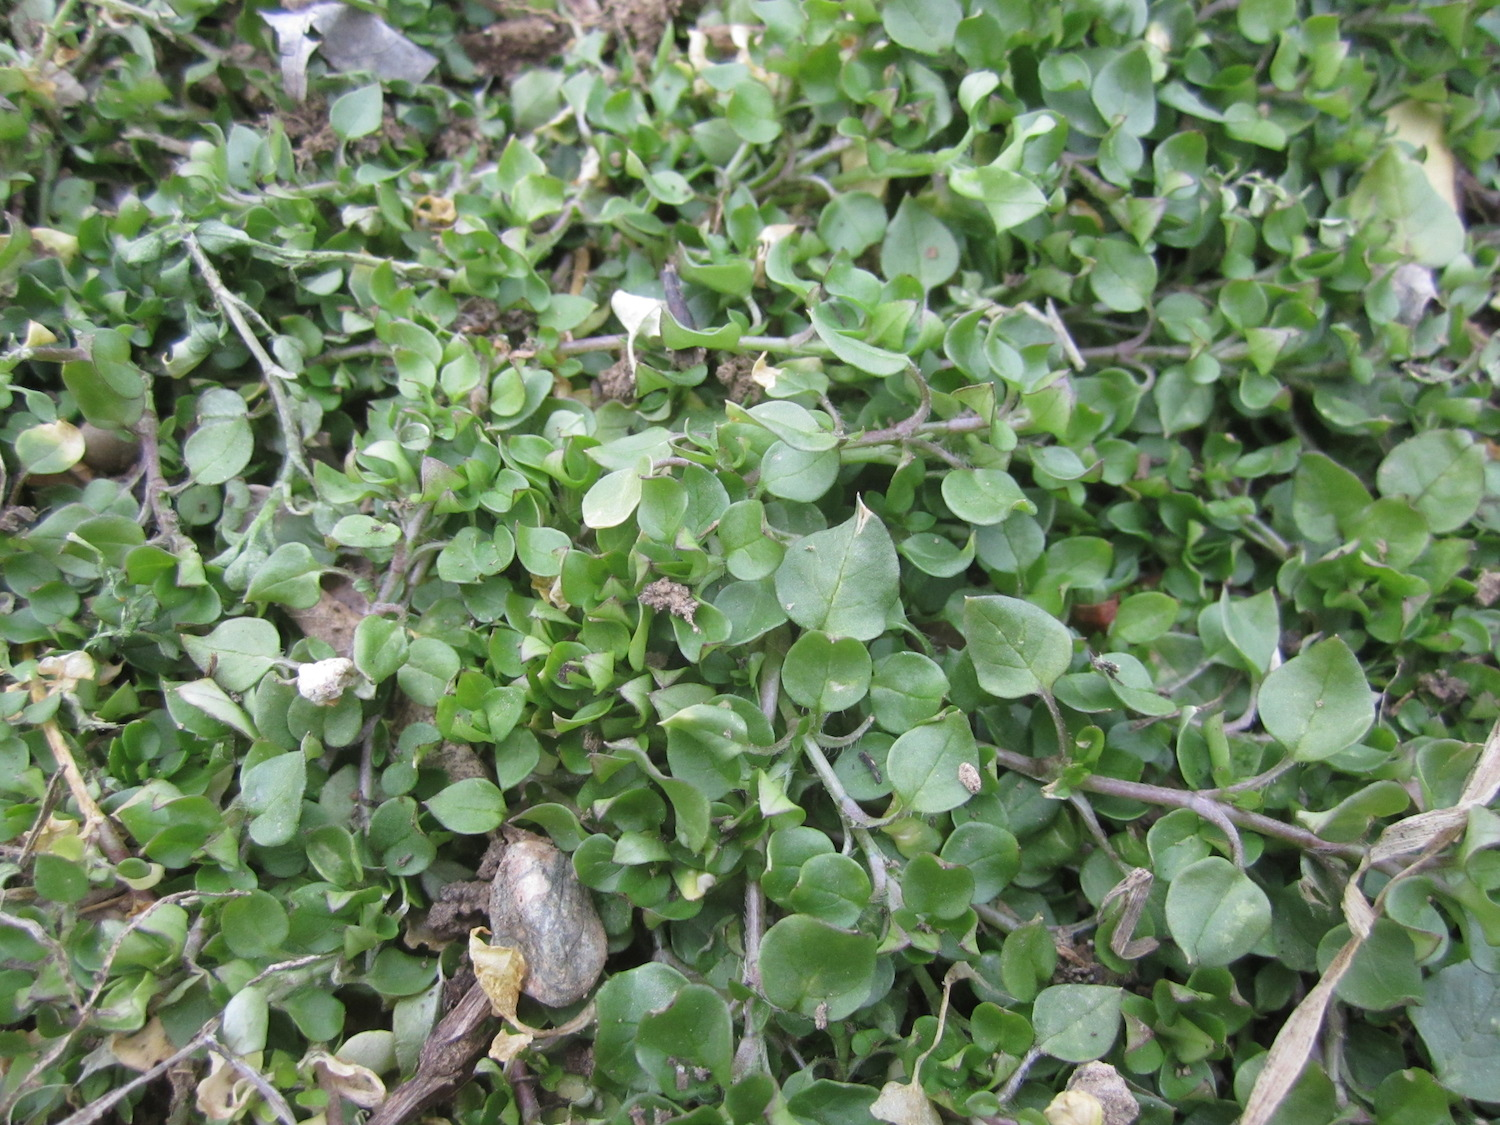 Sprawling chickweed in a garden bed.